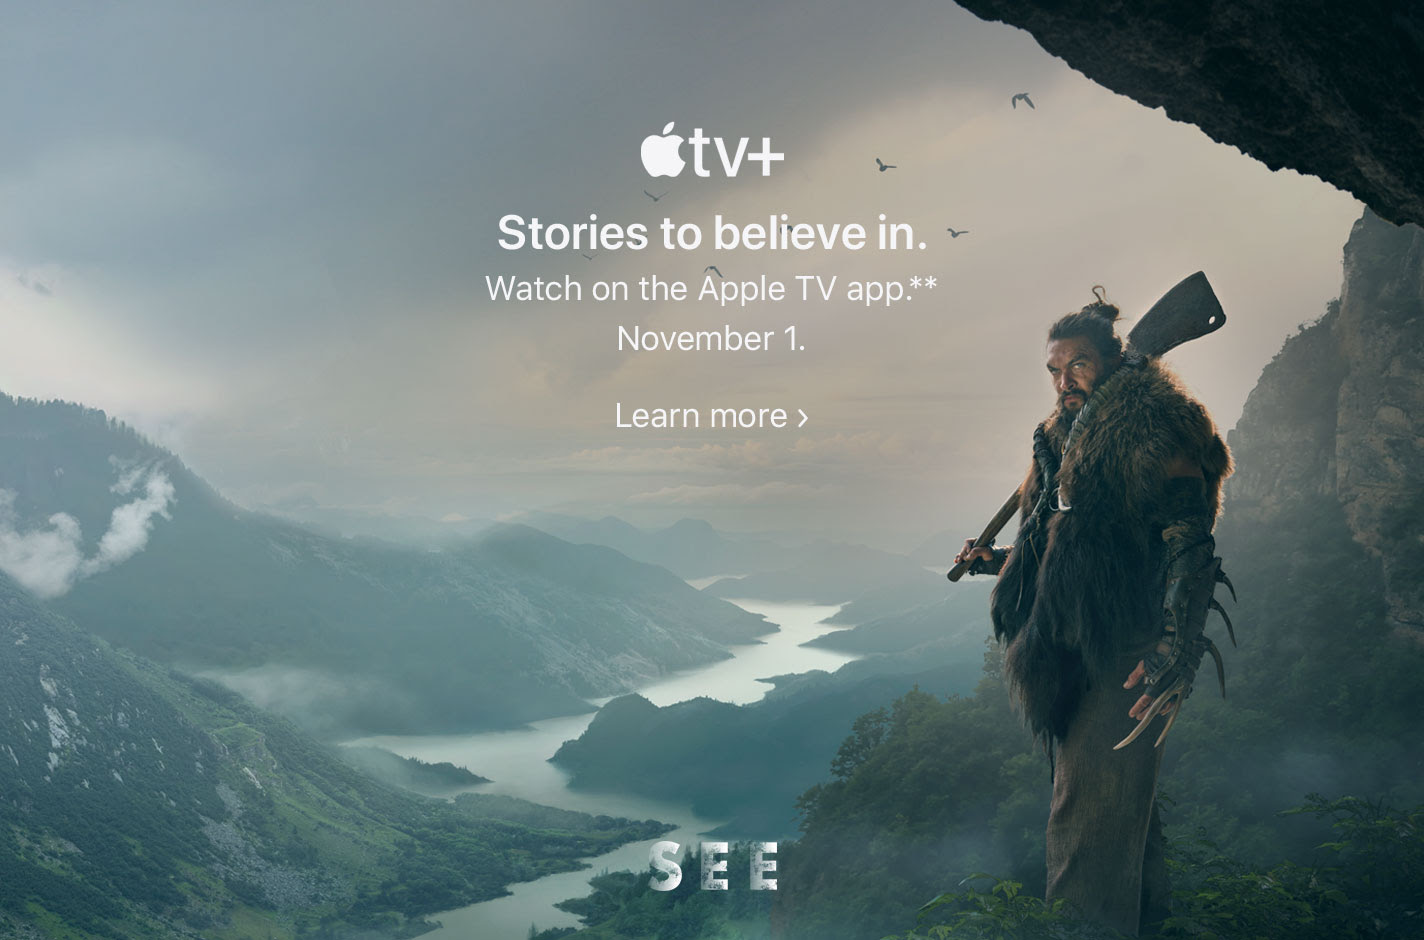 Apple TV+. Stories to believe in. Watch on the Apple TV app.** November 1. Learn more.